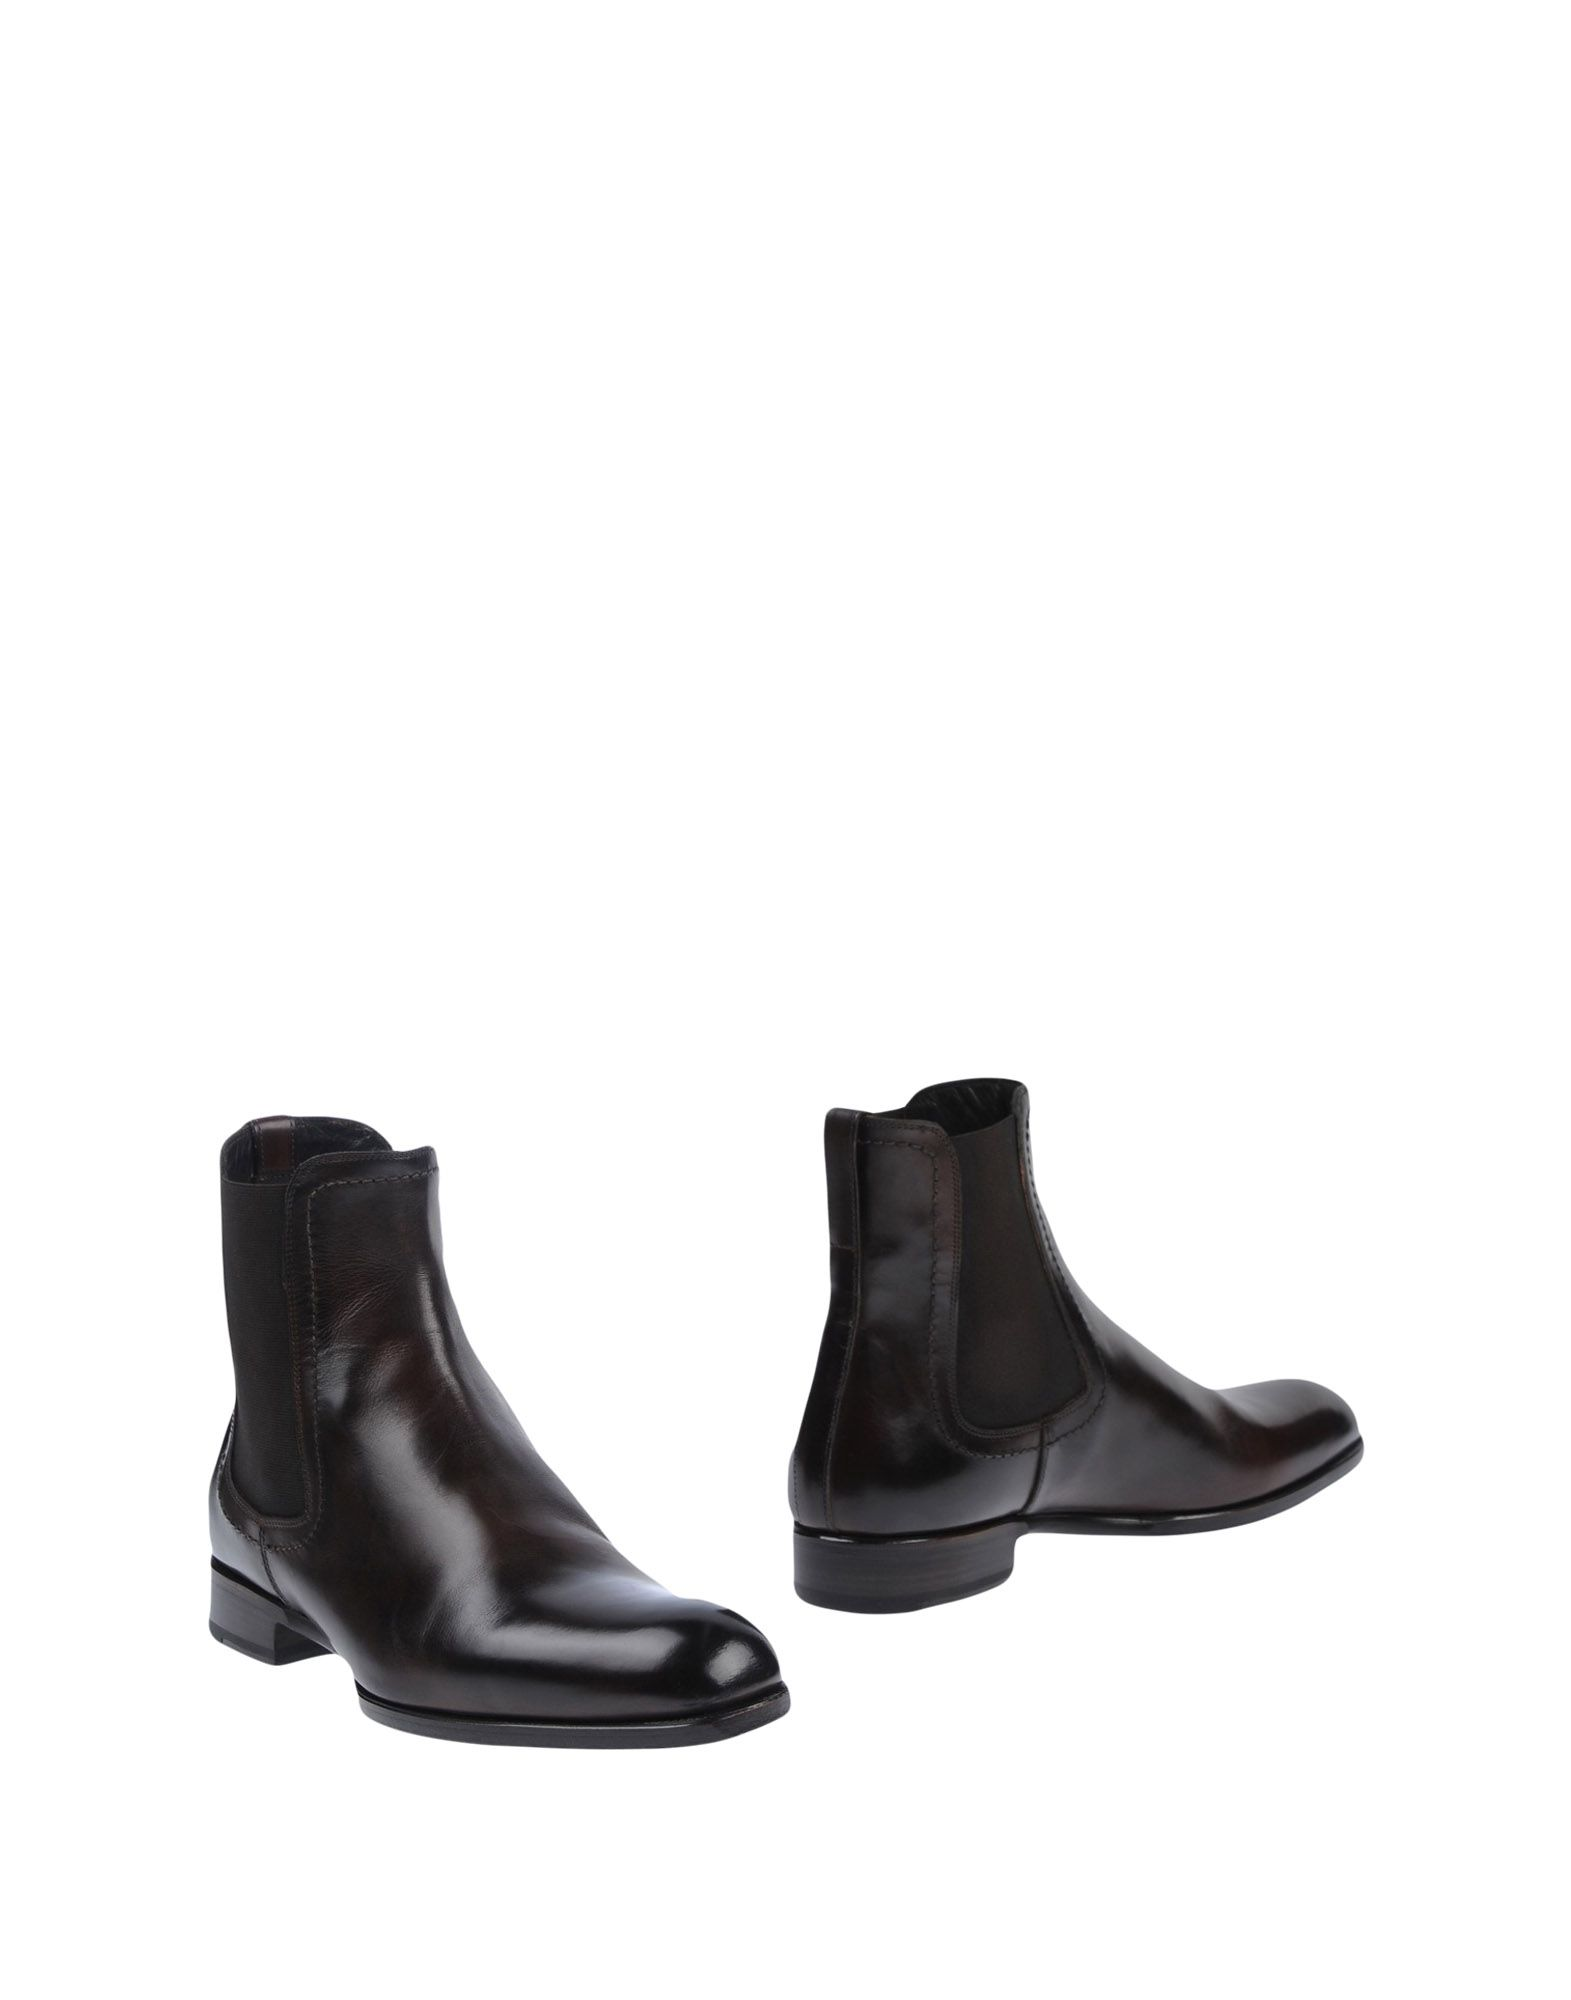 MAX VERRE Ankle Boots in Dark Brown